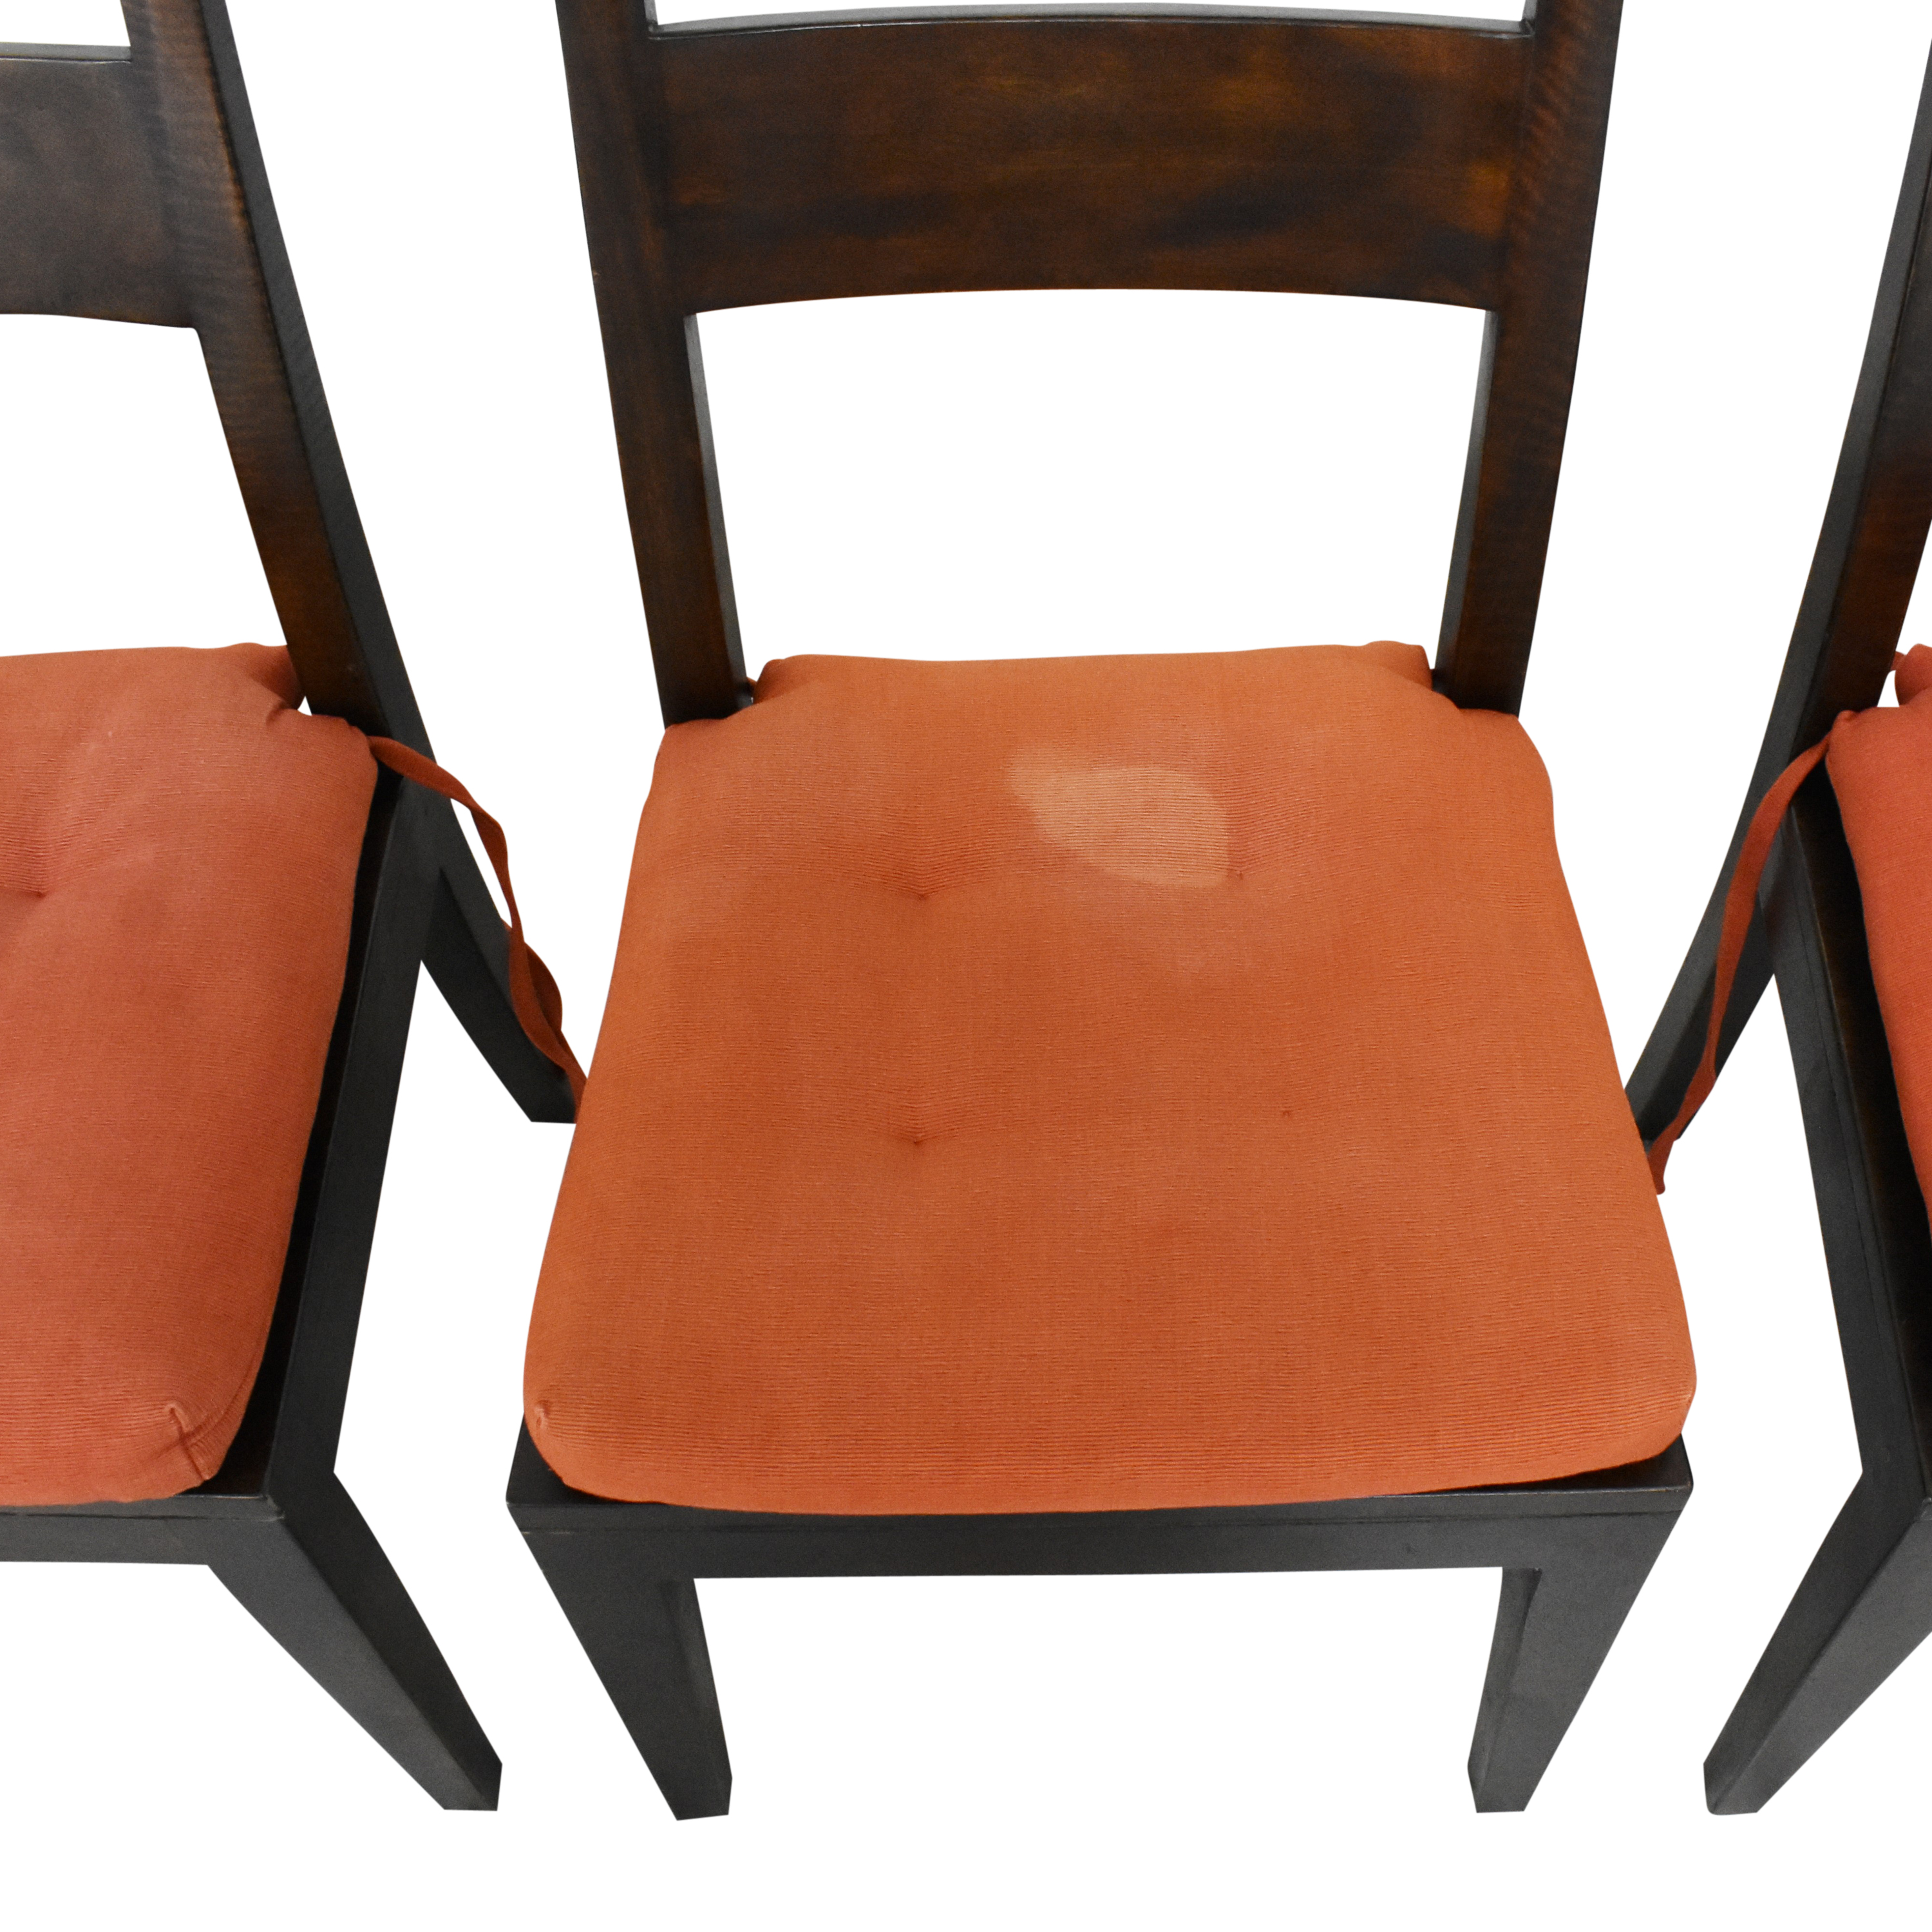 Crate & Barrel Crate & Barrel Basque Dining Side Chairs nyc